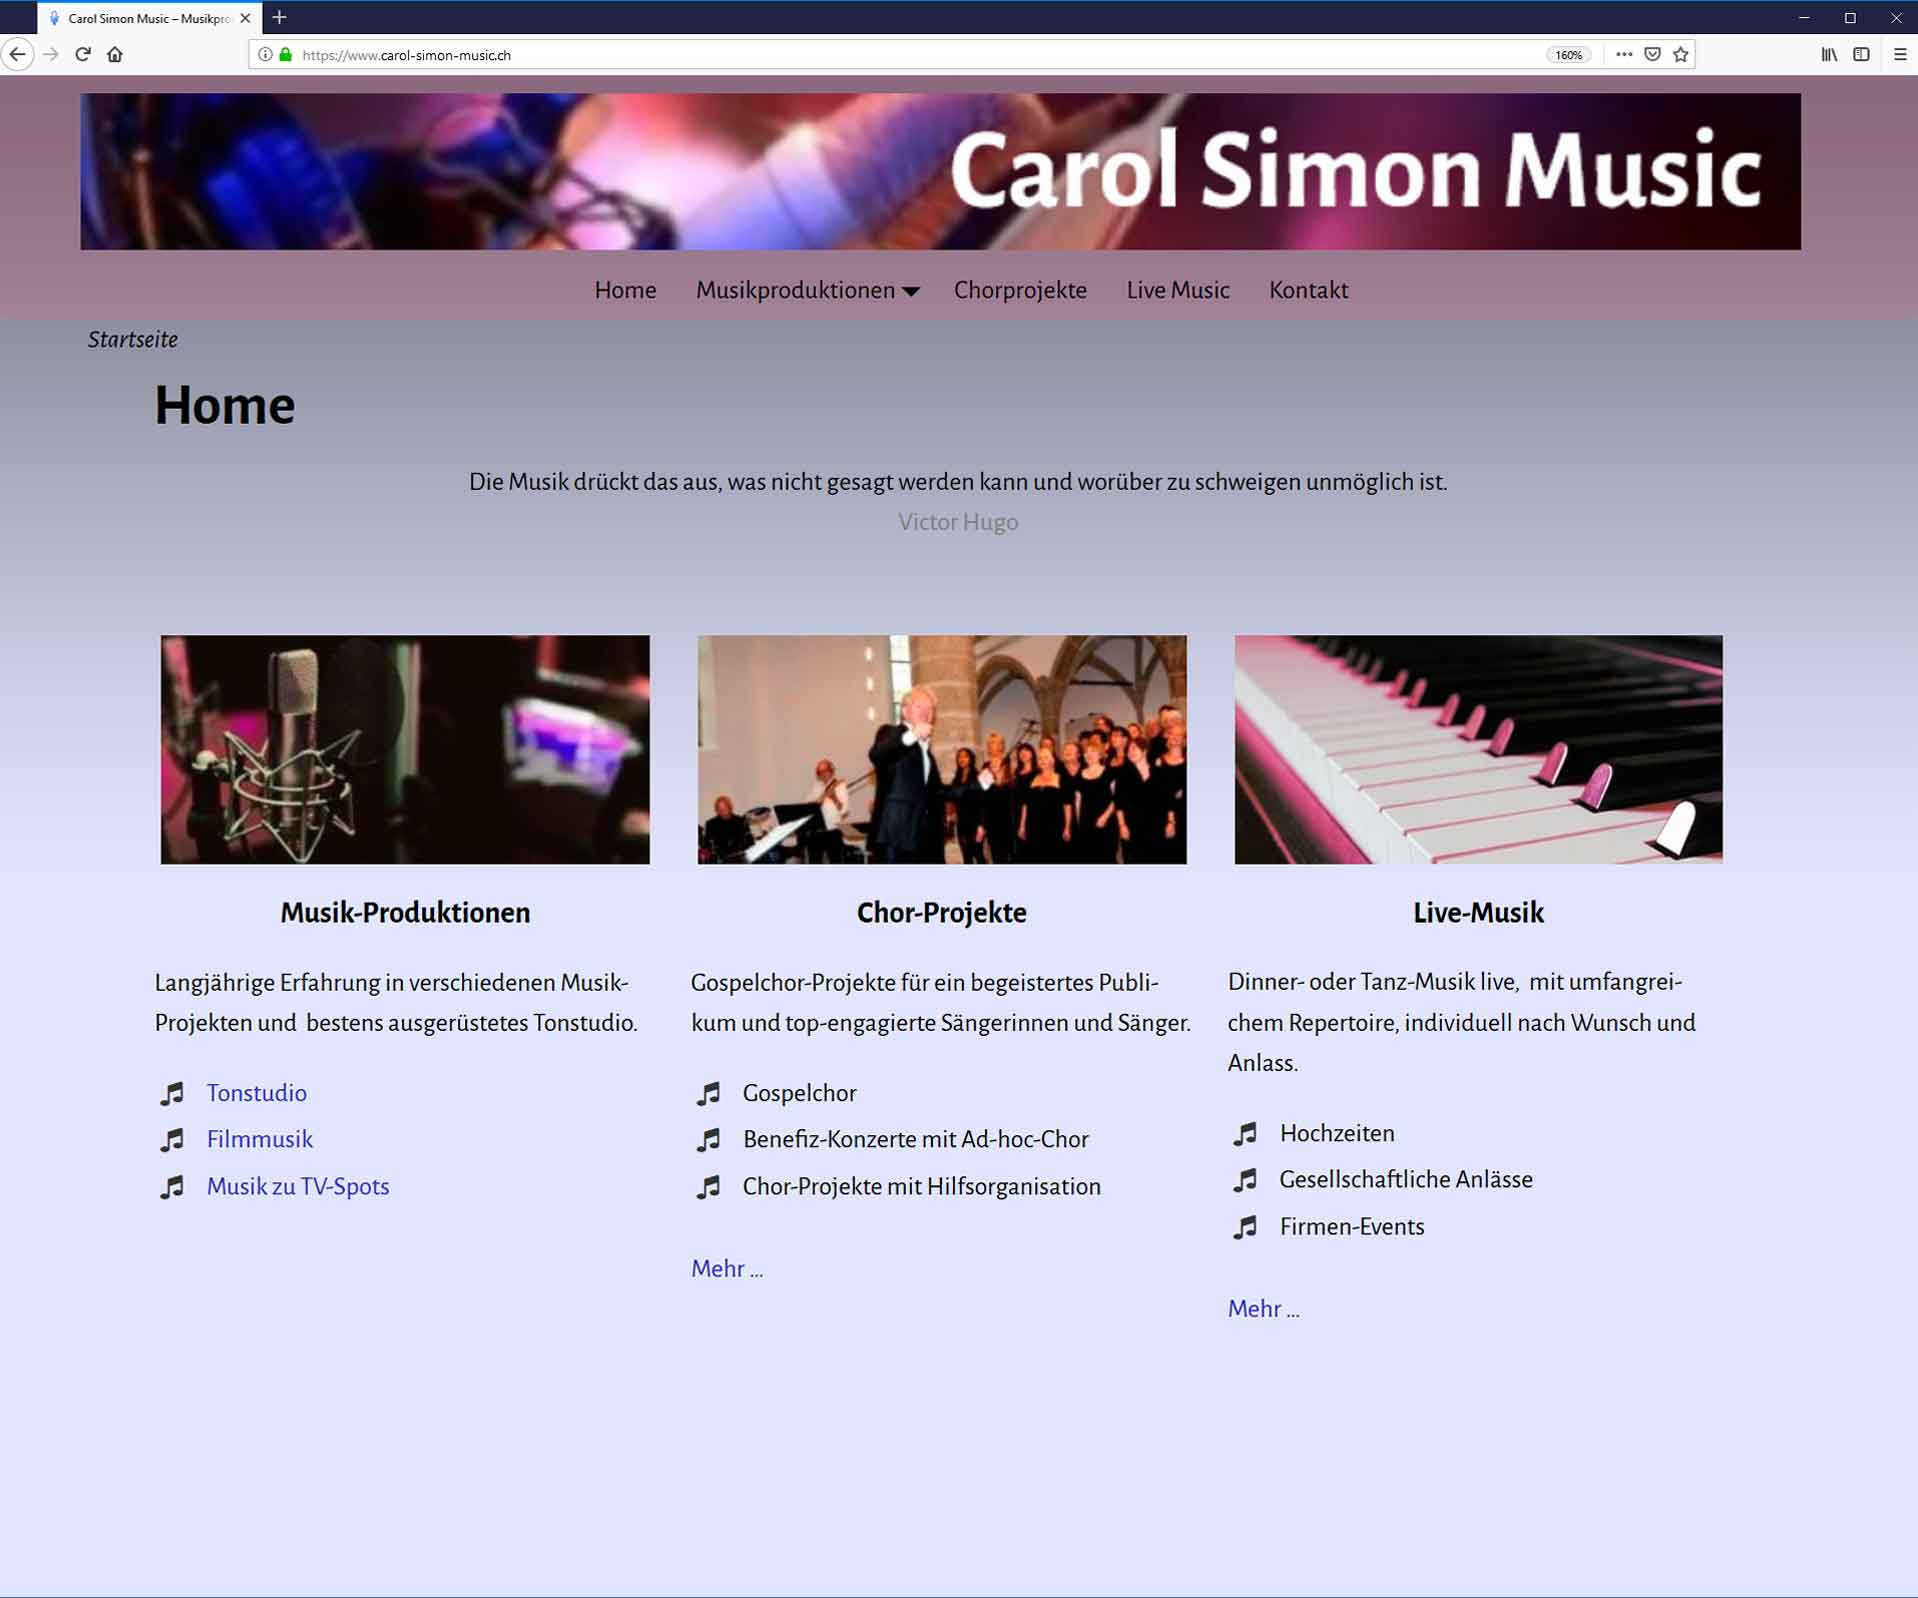 Carol Simon Music